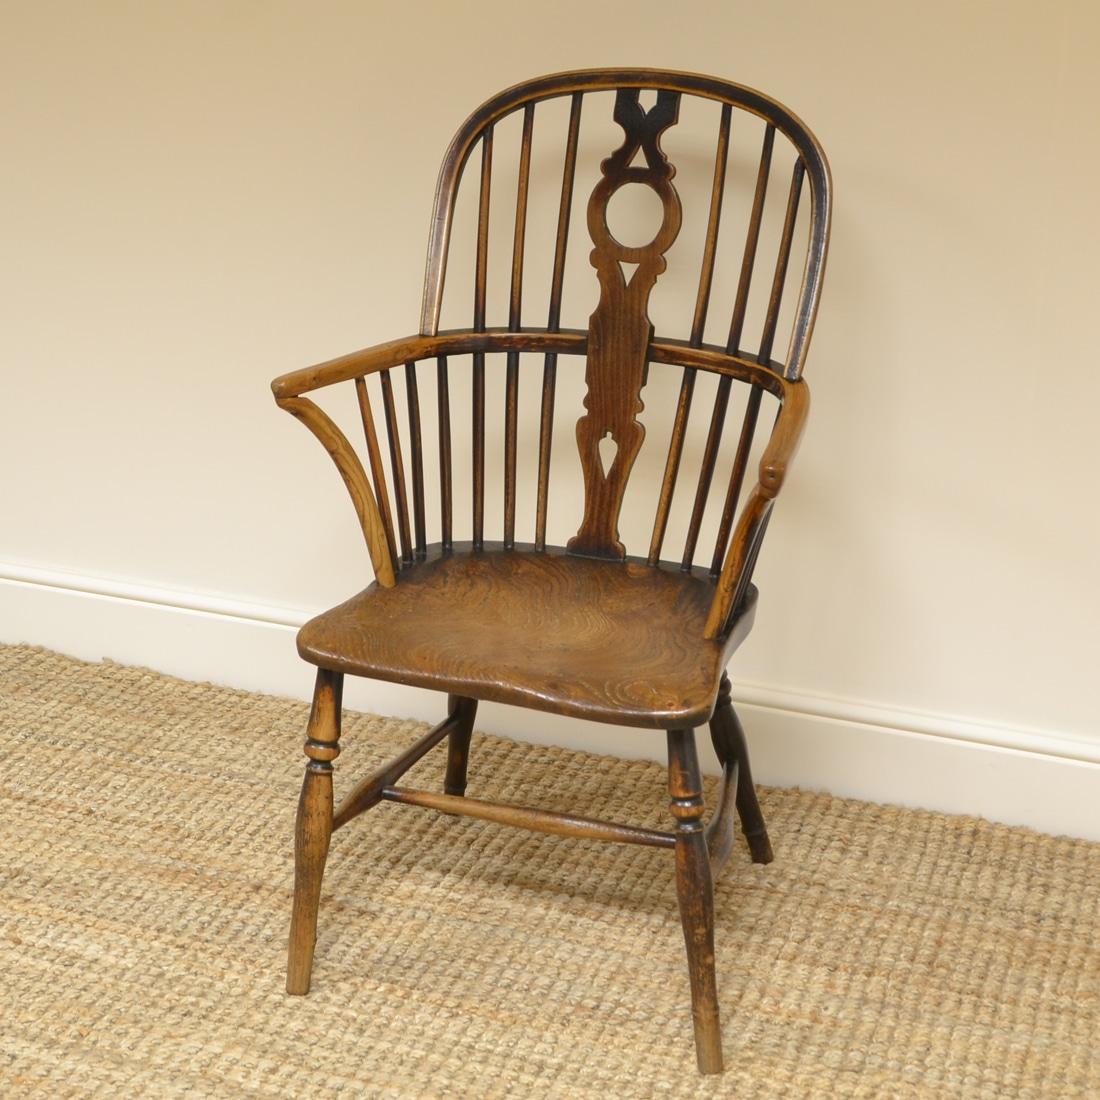 18th century Country House Elm & Ash Antique Windsor Chair